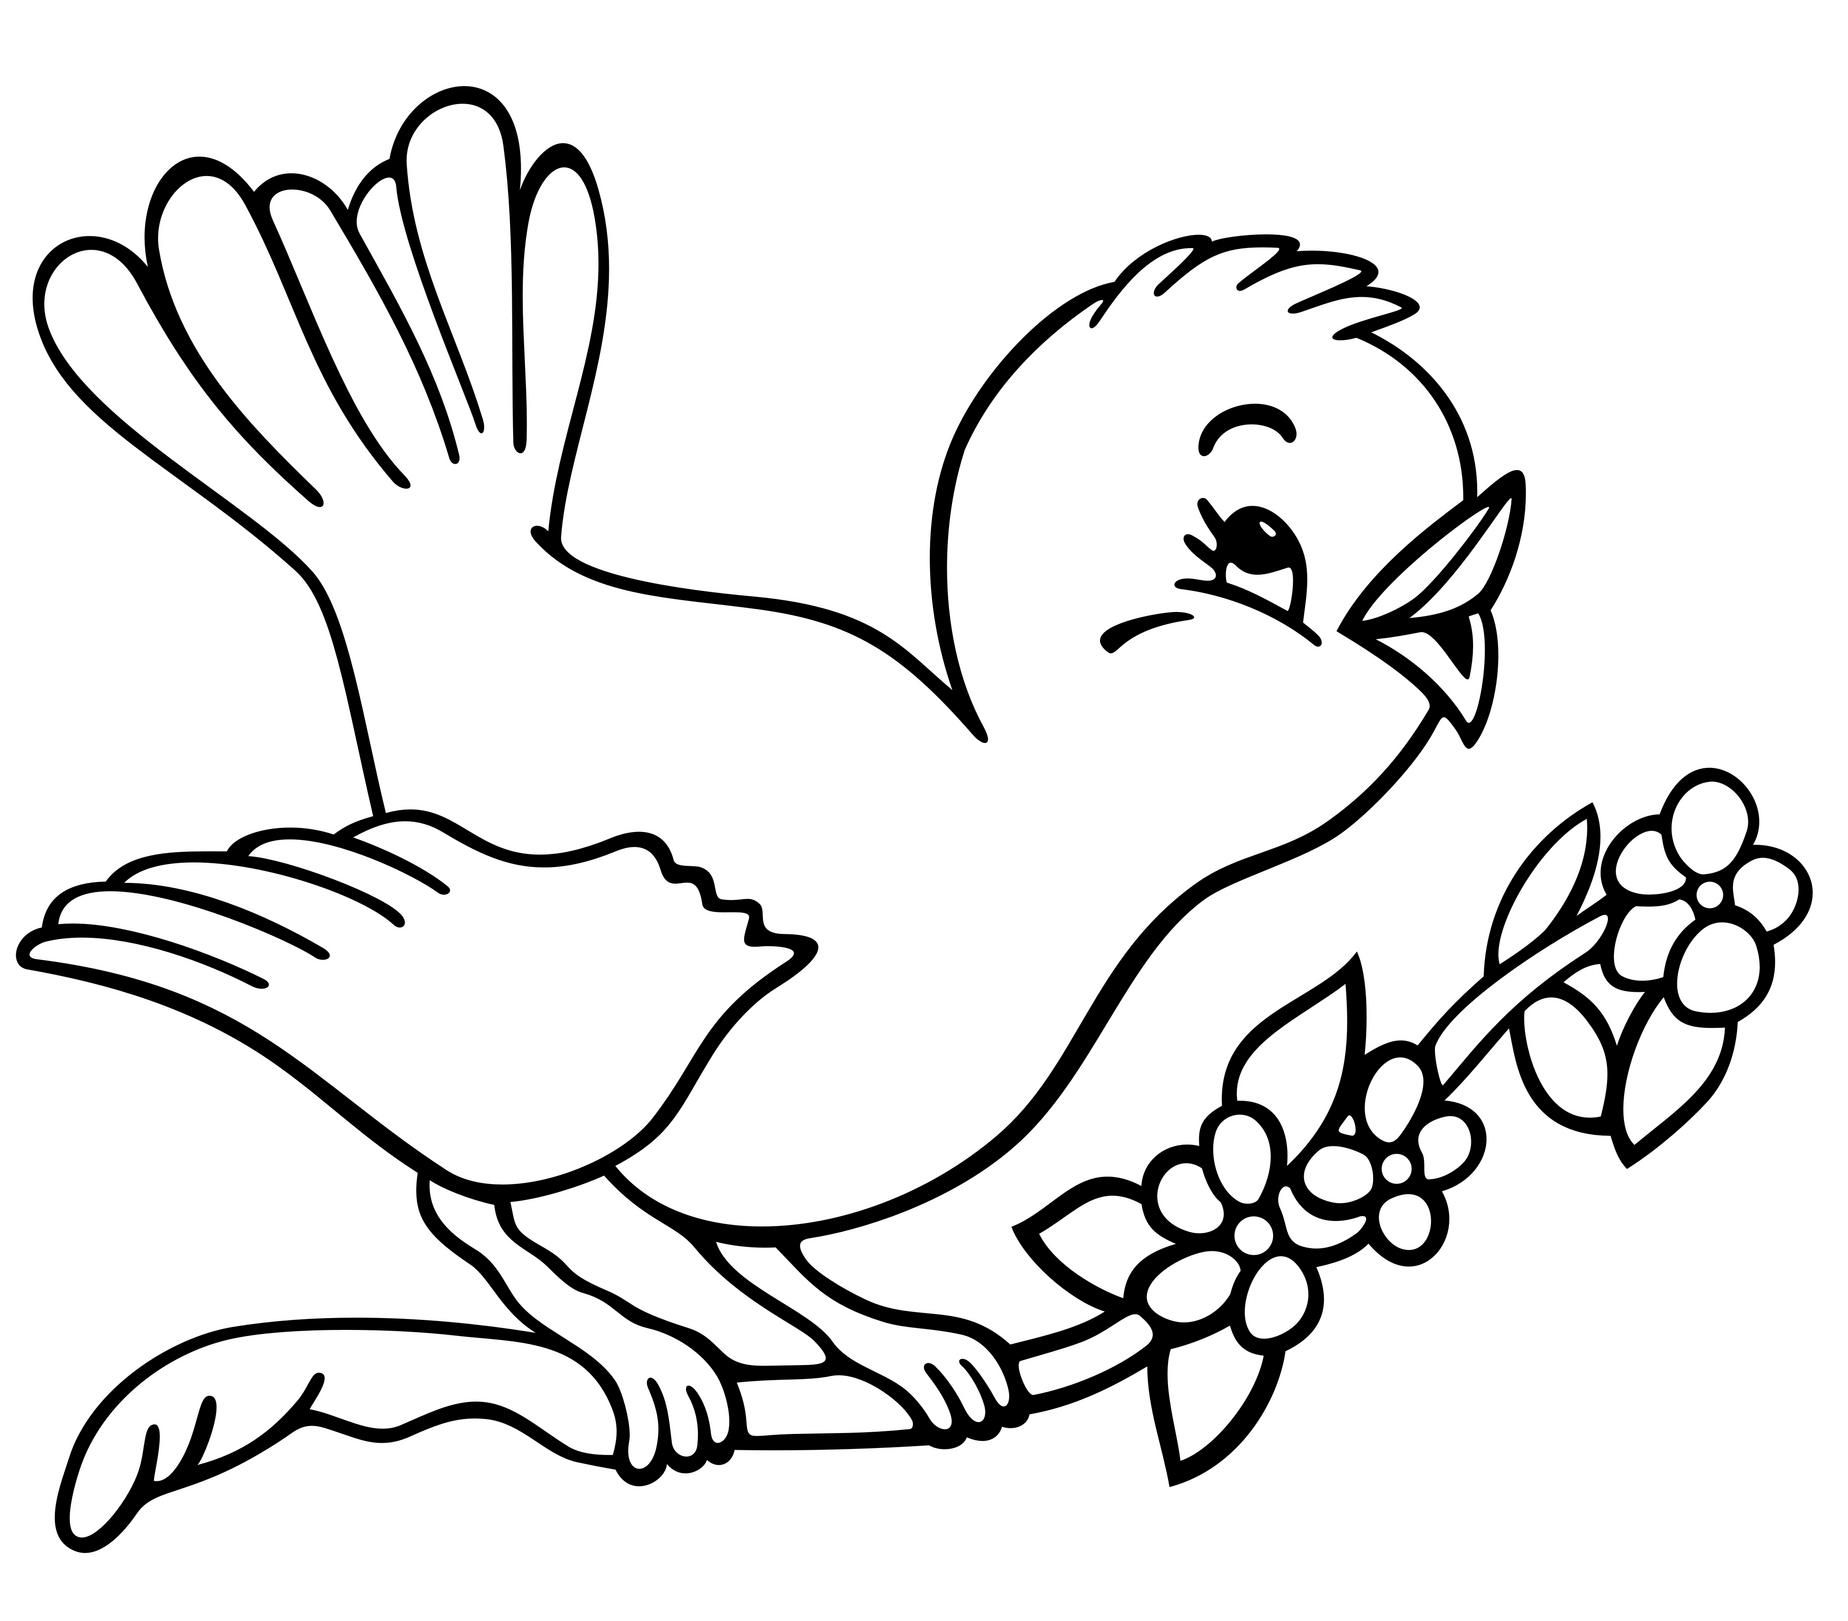 Coloring Pages On Pinterest Bird Coloring Page Inspire 2861 Pages Pinterest Ruva And Also 0